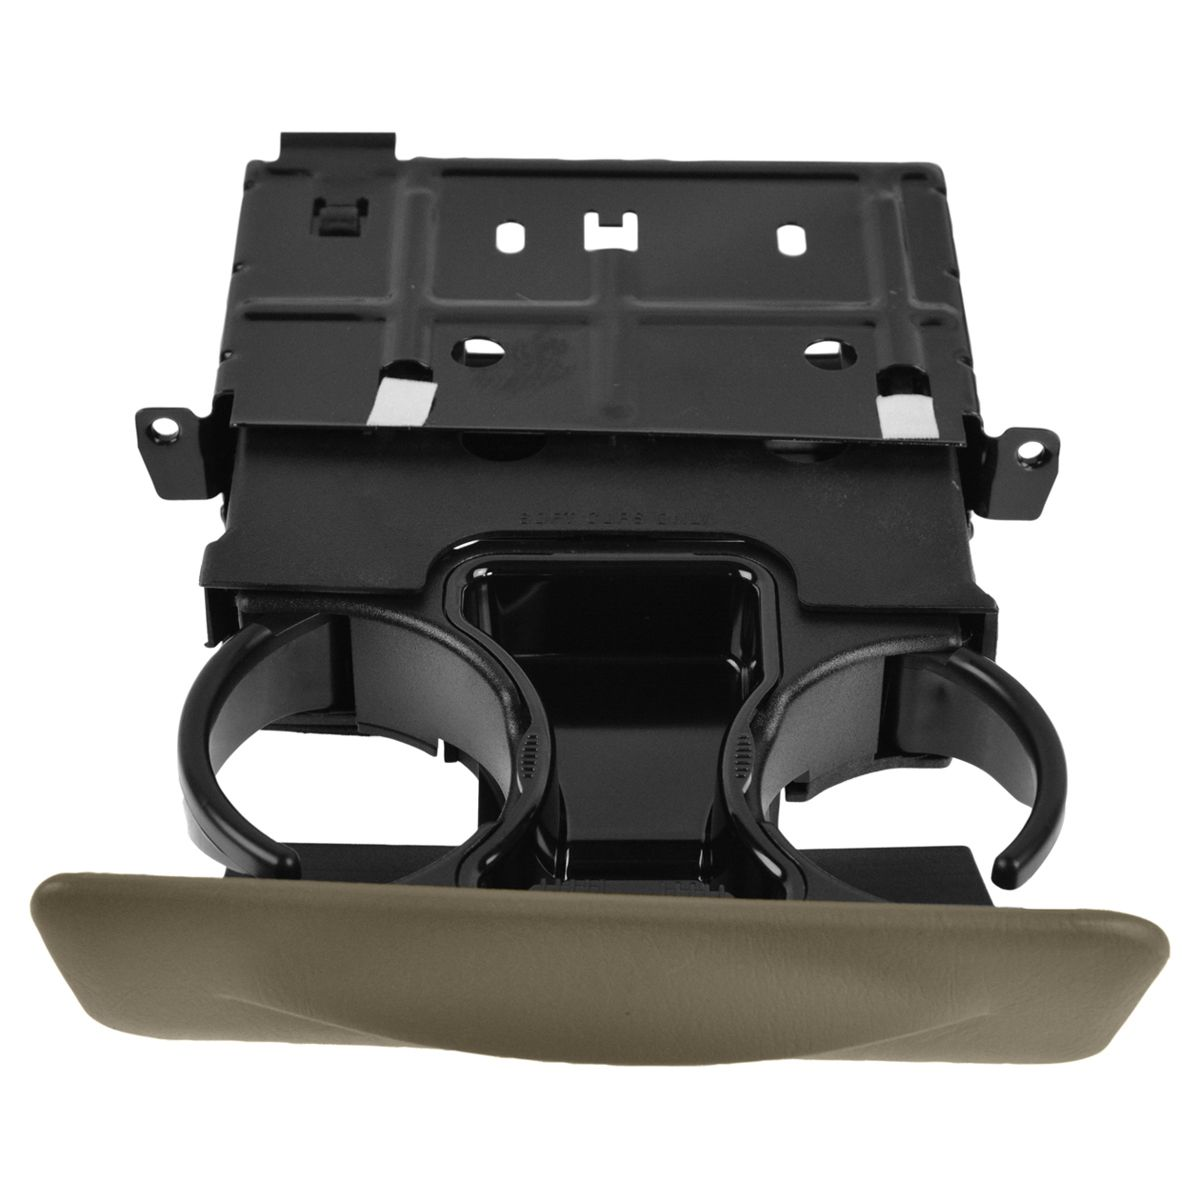 Cup Holder for Ford F250 F350 F450 F550 Super Duty 1999 2000 2001 2002 2003 2004 Ford Excursion Dash Cup Holder Parchment Tan